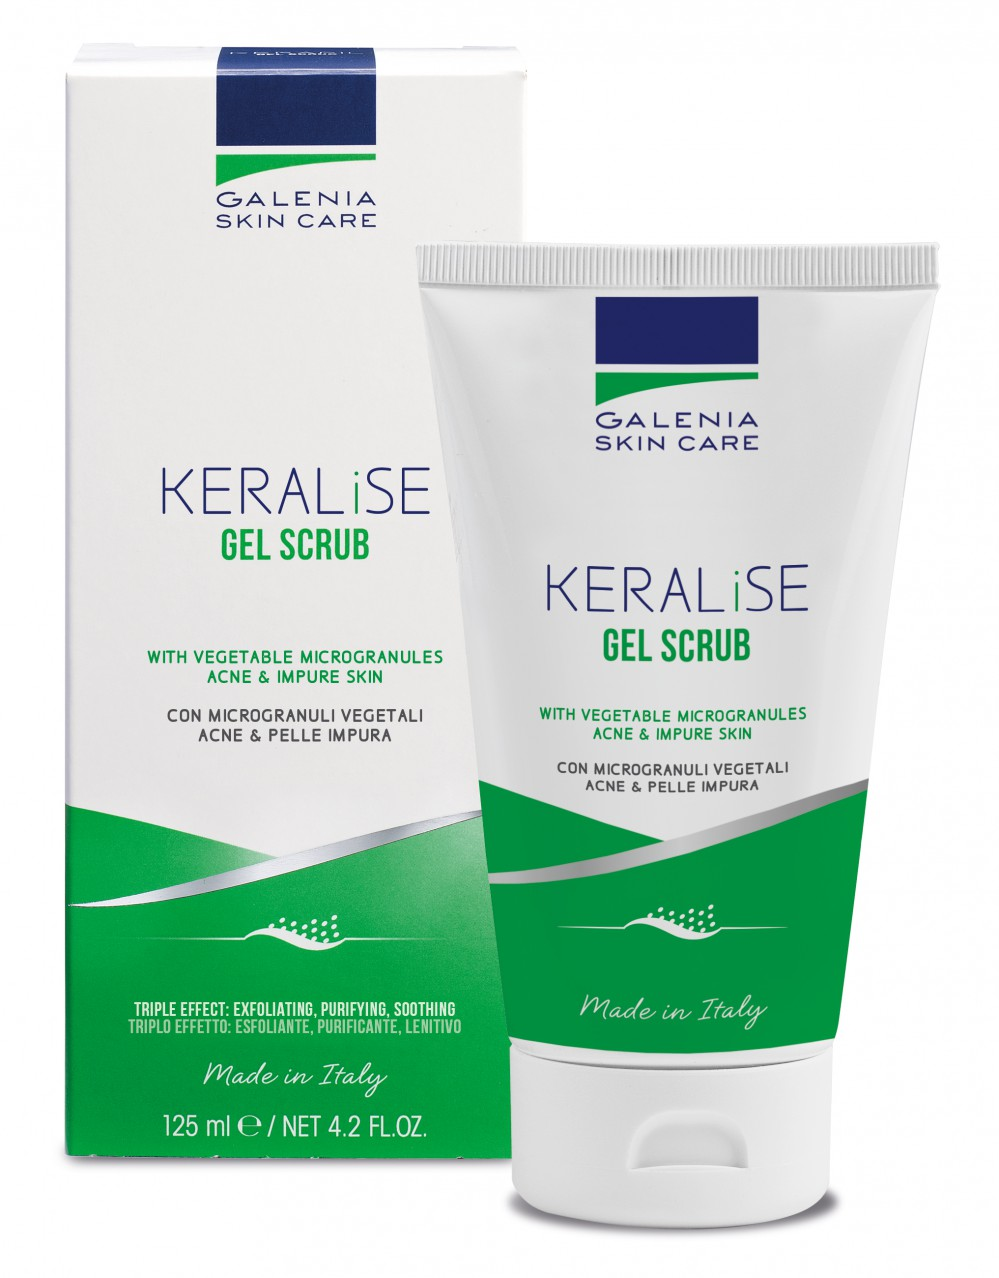 KERALISE GEL SCRUB